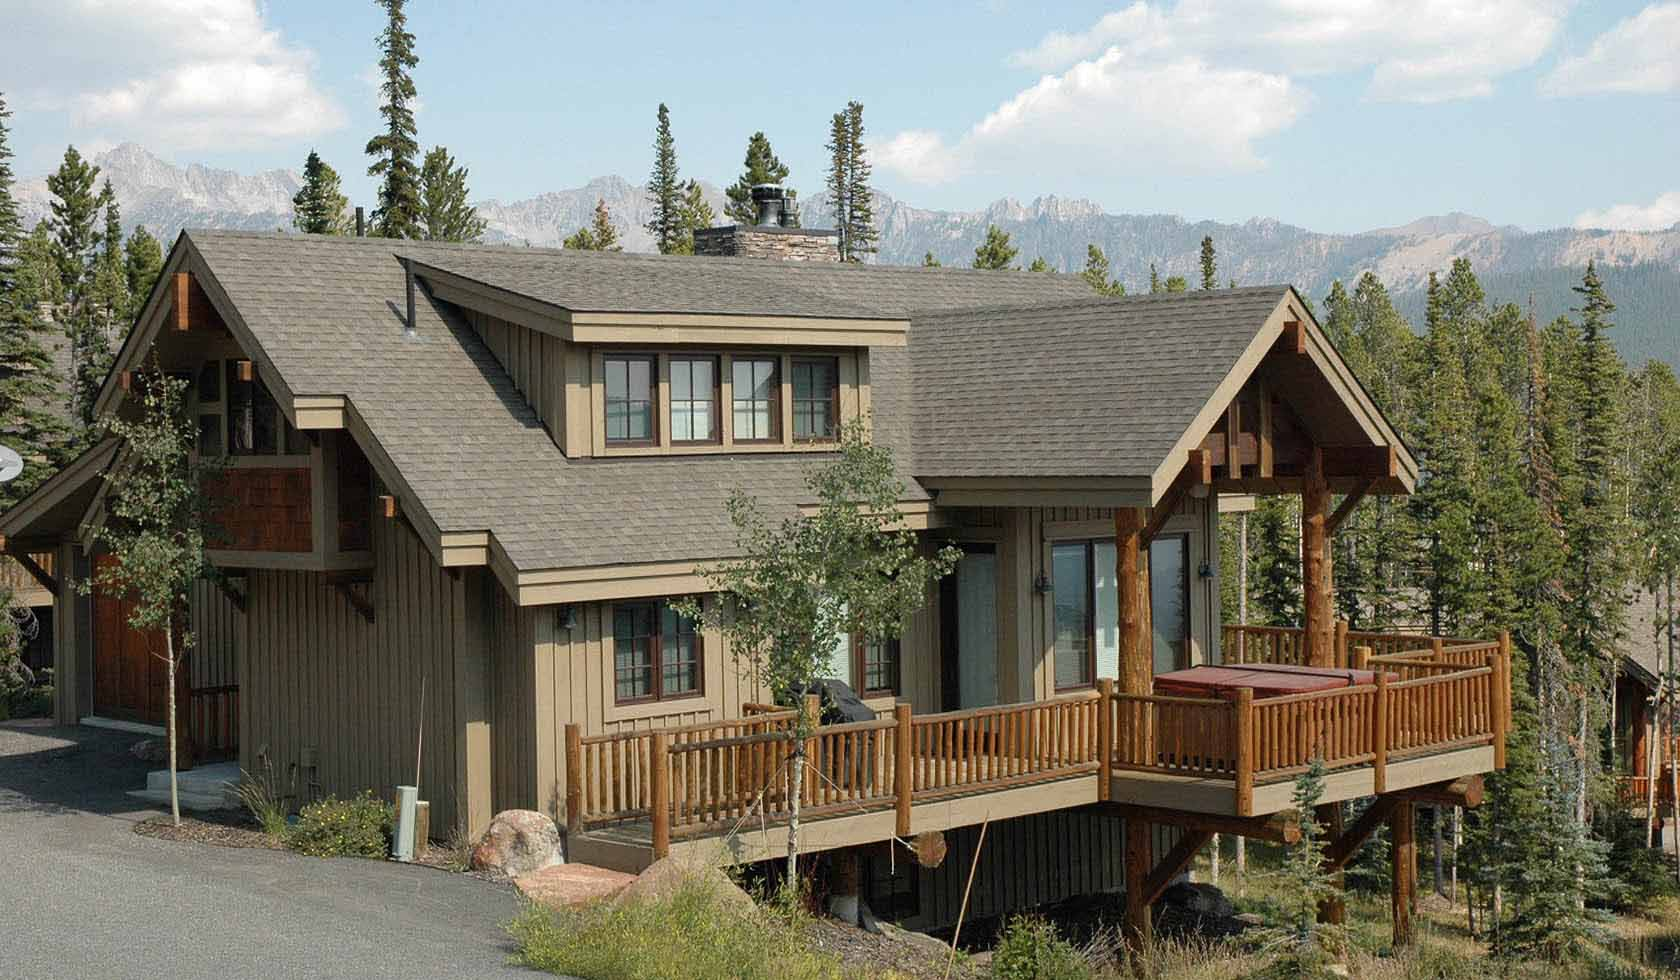 Moonlight Mountain Home 7 Shadow Ridge profile image